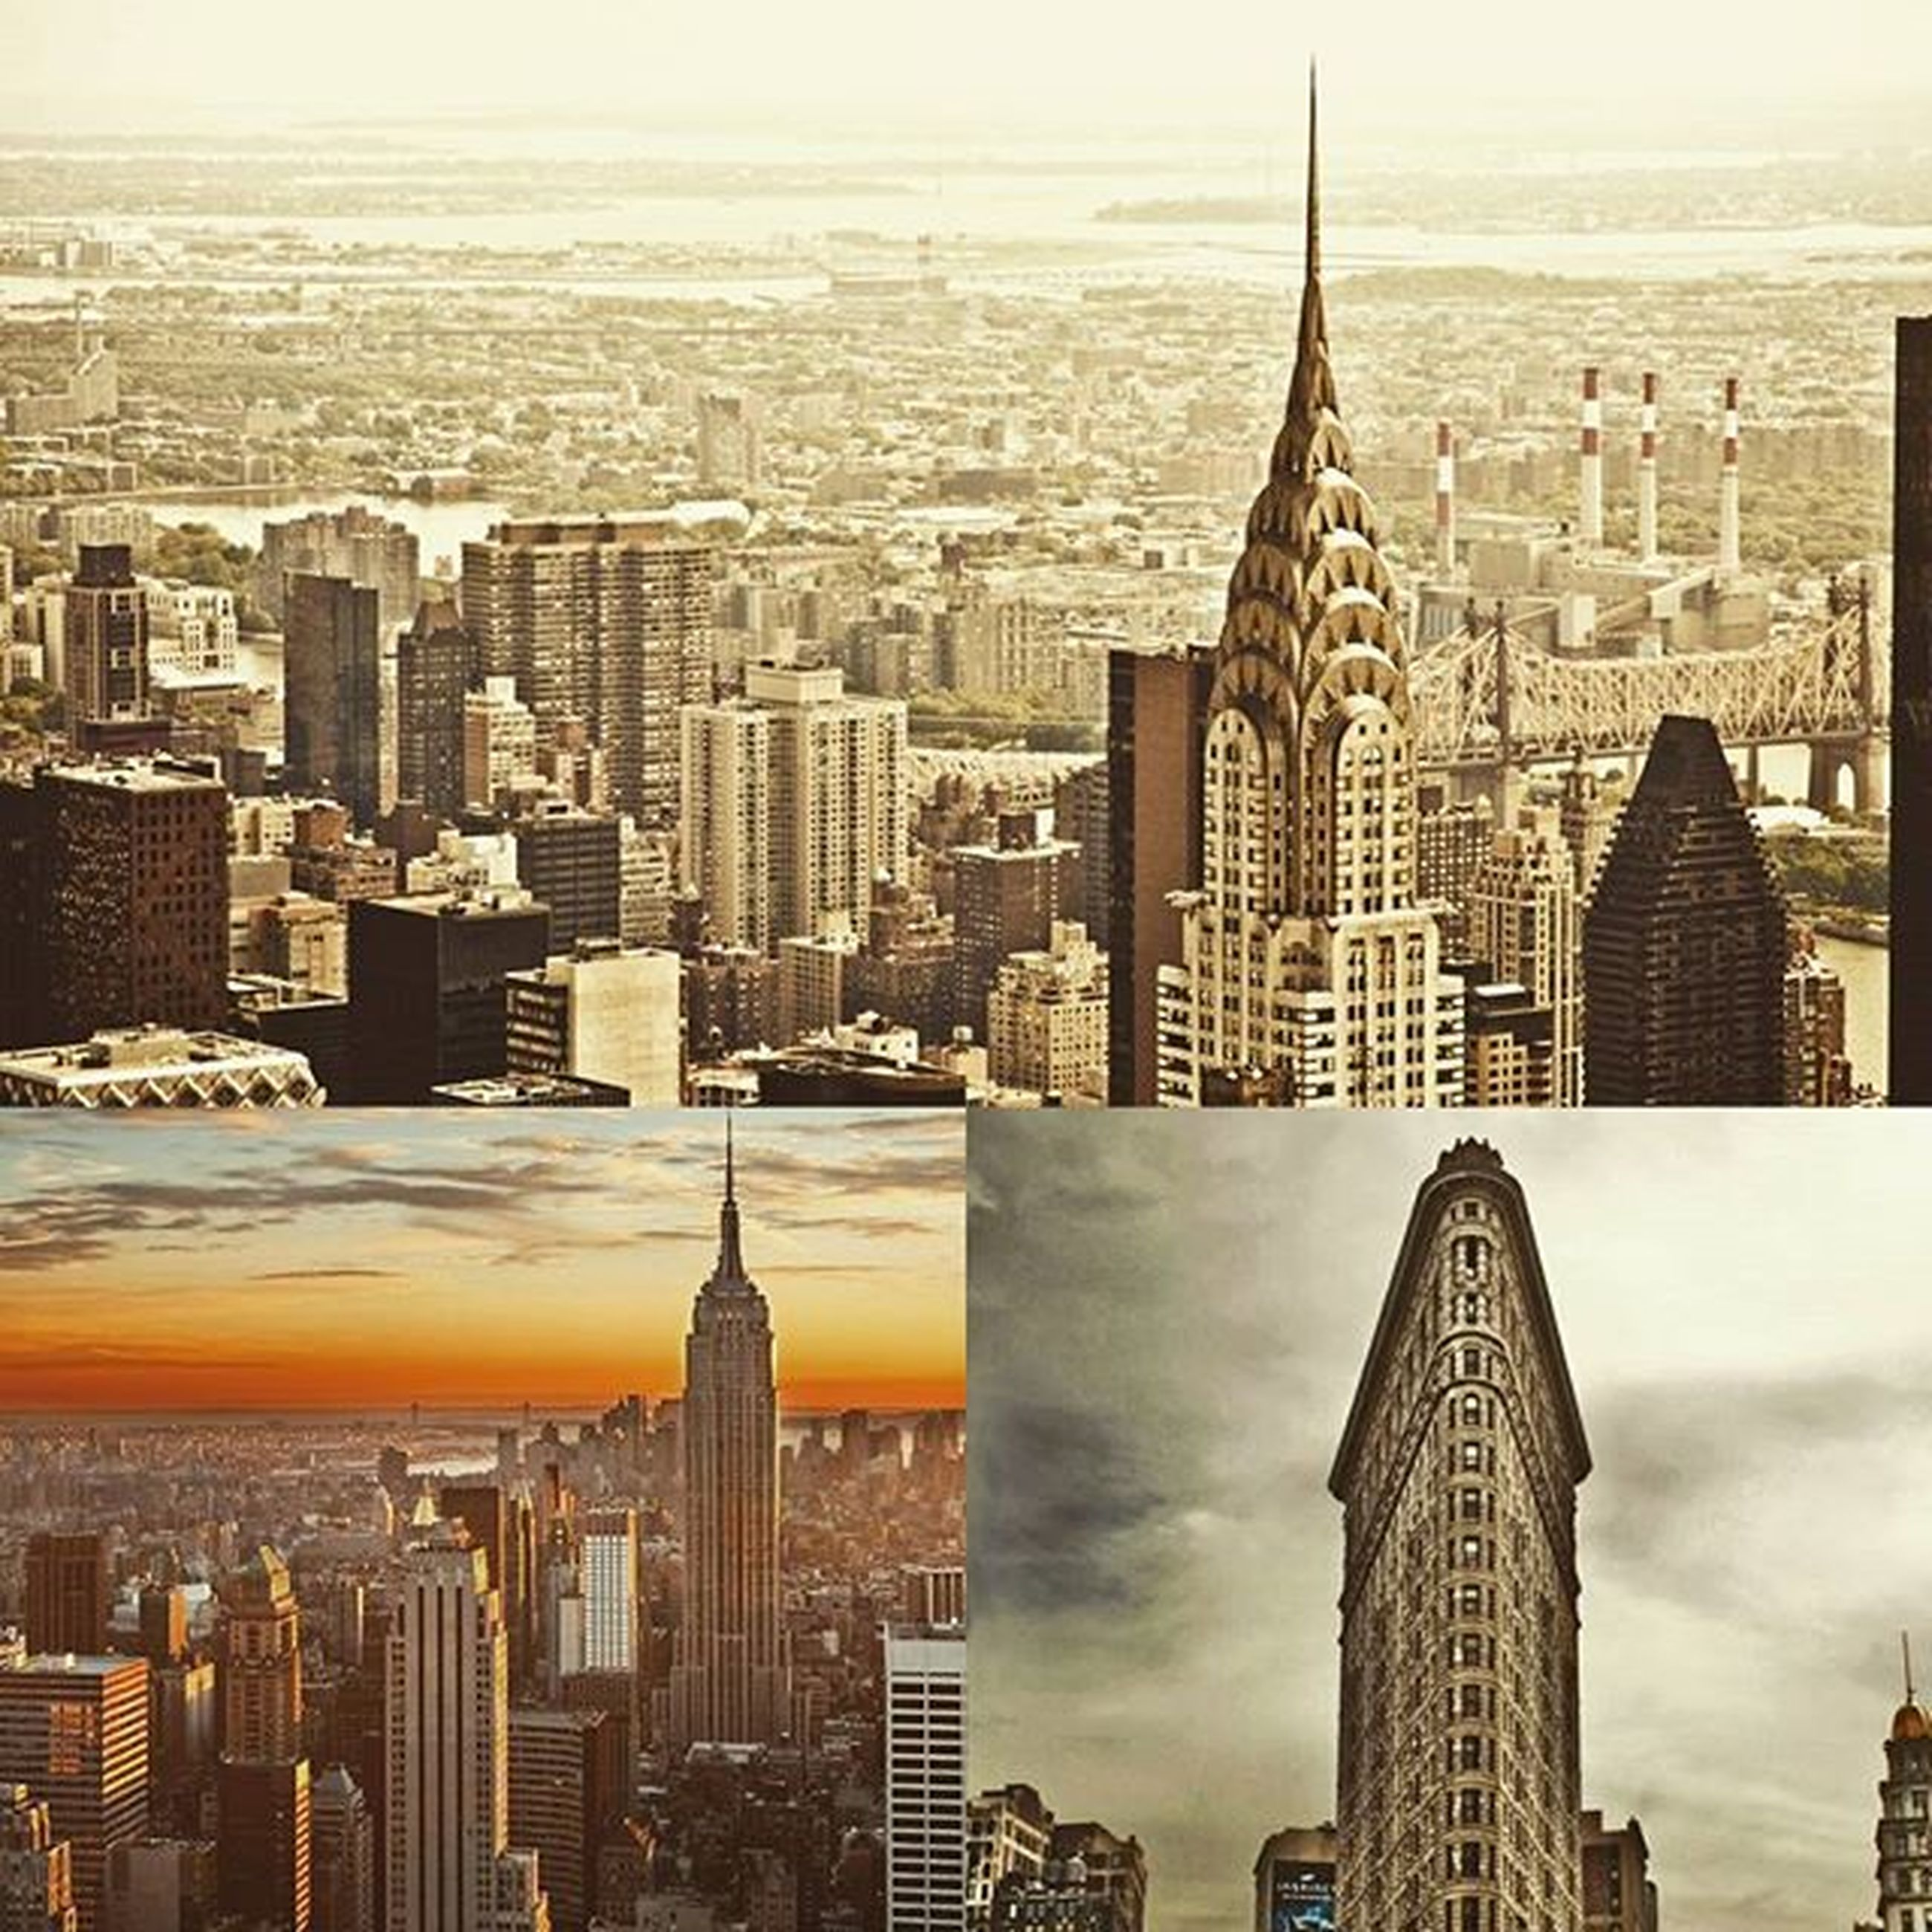 architecture, building exterior, city, built structure, cityscape, skyscraper, tower, tall - high, modern, capital cities, international landmark, famous place, travel destinations, crowded, office building, tourism, travel, financial district, urban skyline, empire state building